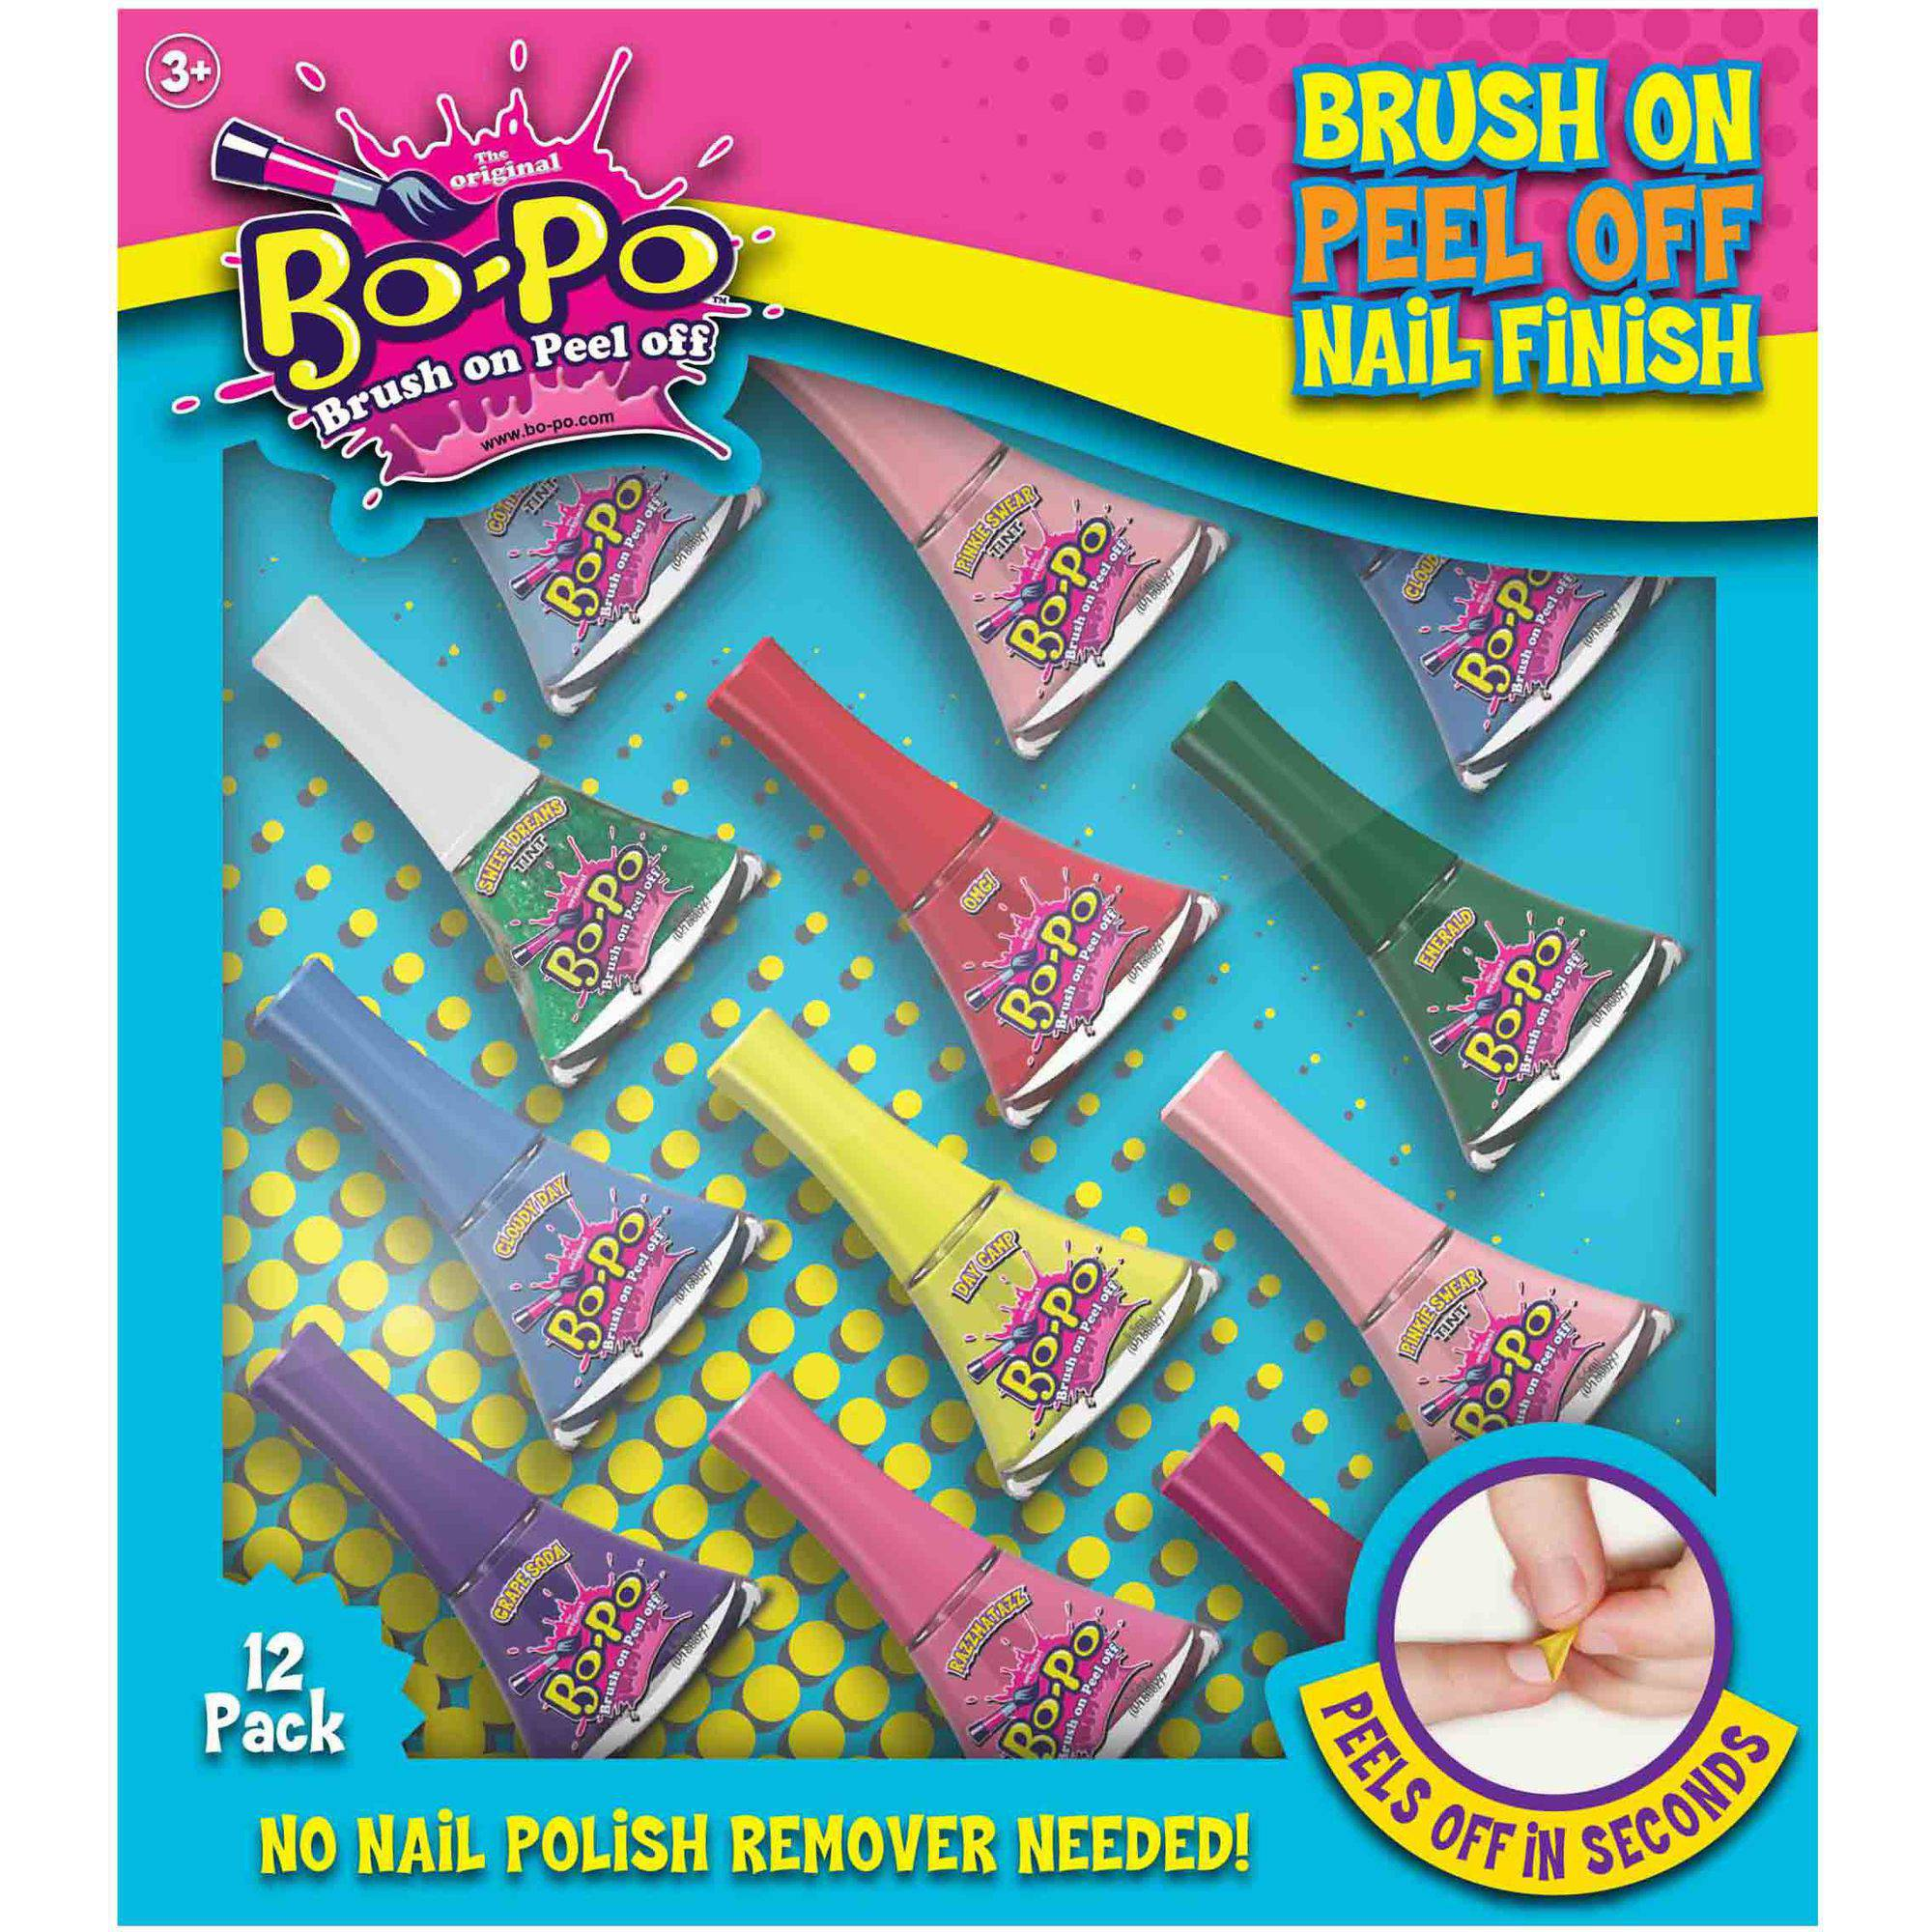 Bo-Po Brush-On-Peel-Off Nail Polish Variety Pack, 0.186 fl oz, 12 count